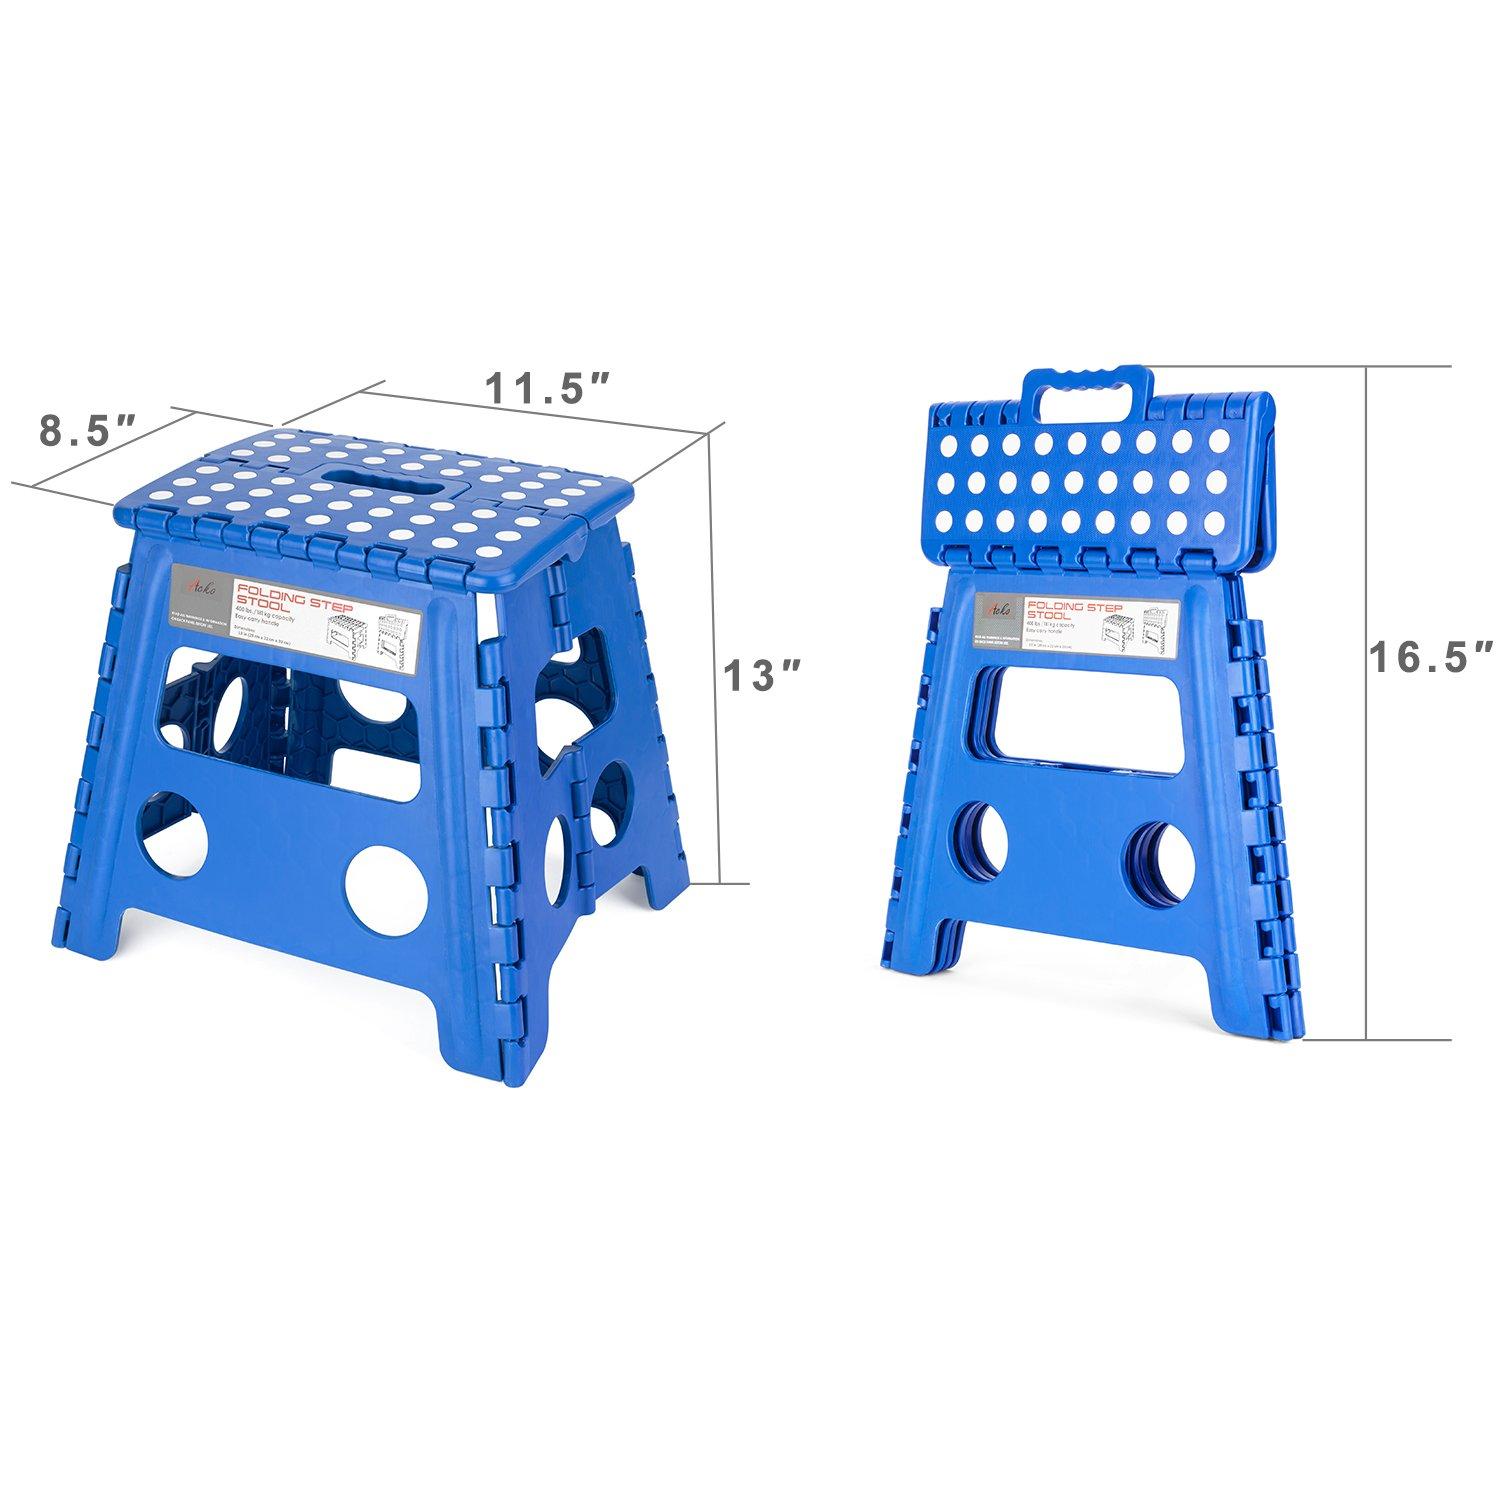 Amazon.com  Acko Folding Step Stool - 13 inch Height Premium Heavy Duty Foldable Stool For Kids u0026 Adults Kitchen Garden Bathroom Stepping Stool (Blue)  ...  sc 1 st  Amazon.com & Amazon.com : Acko Folding Step Stool - 13 inch Height Premium ... islam-shia.org